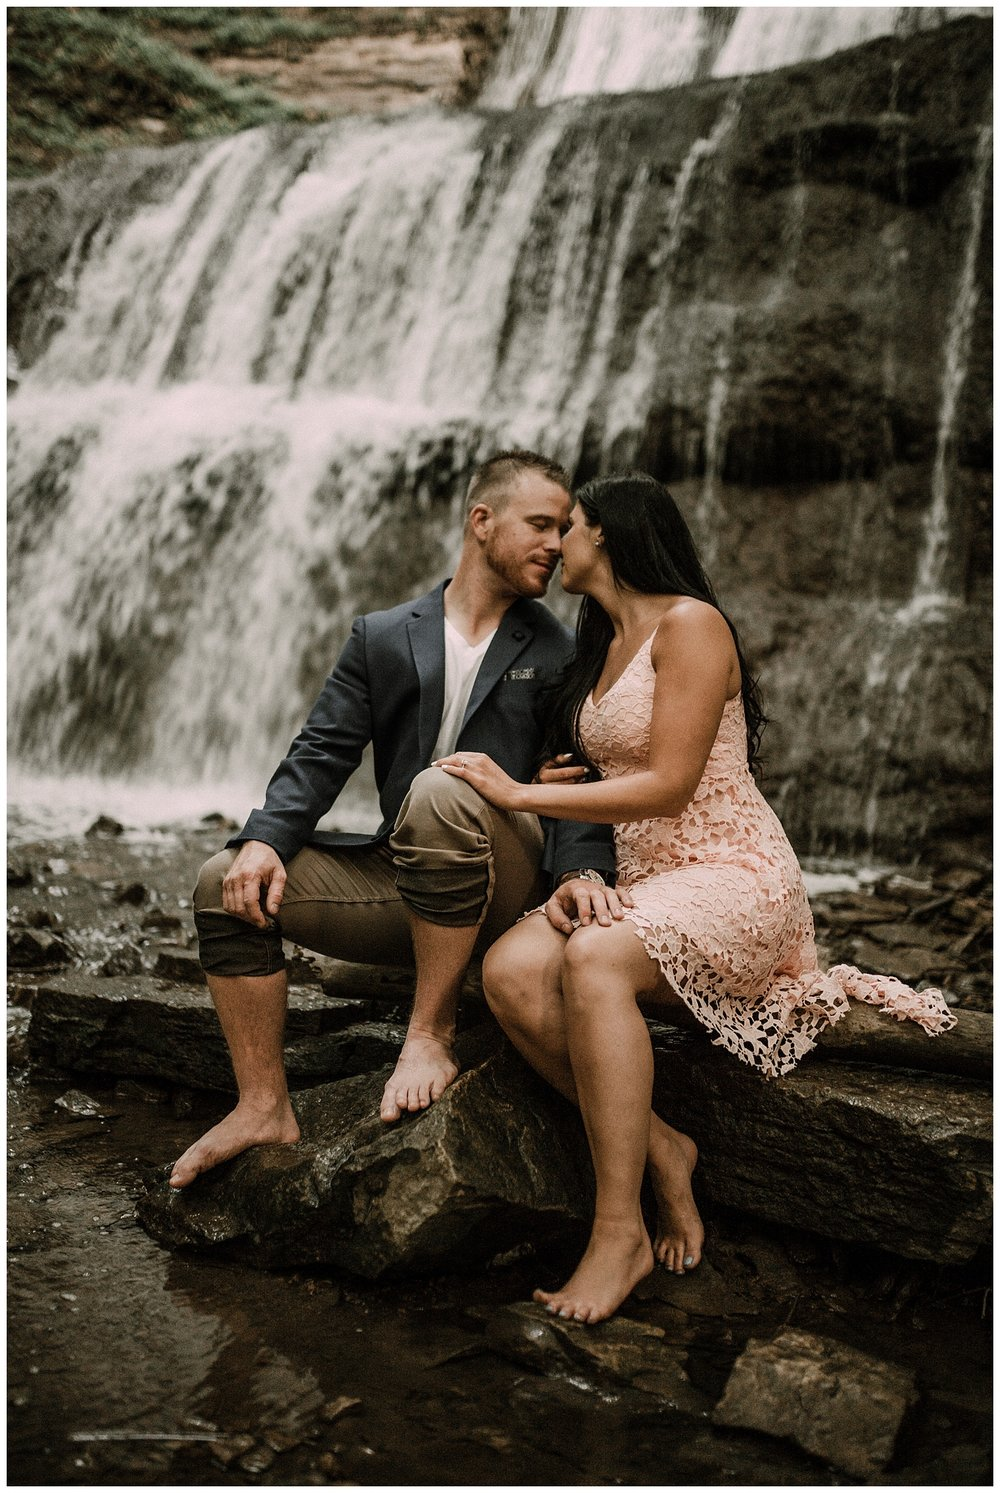 katie marie photography - dundas hamilton waterfall engagement photoshoot - wedding photographer_0078.jpg